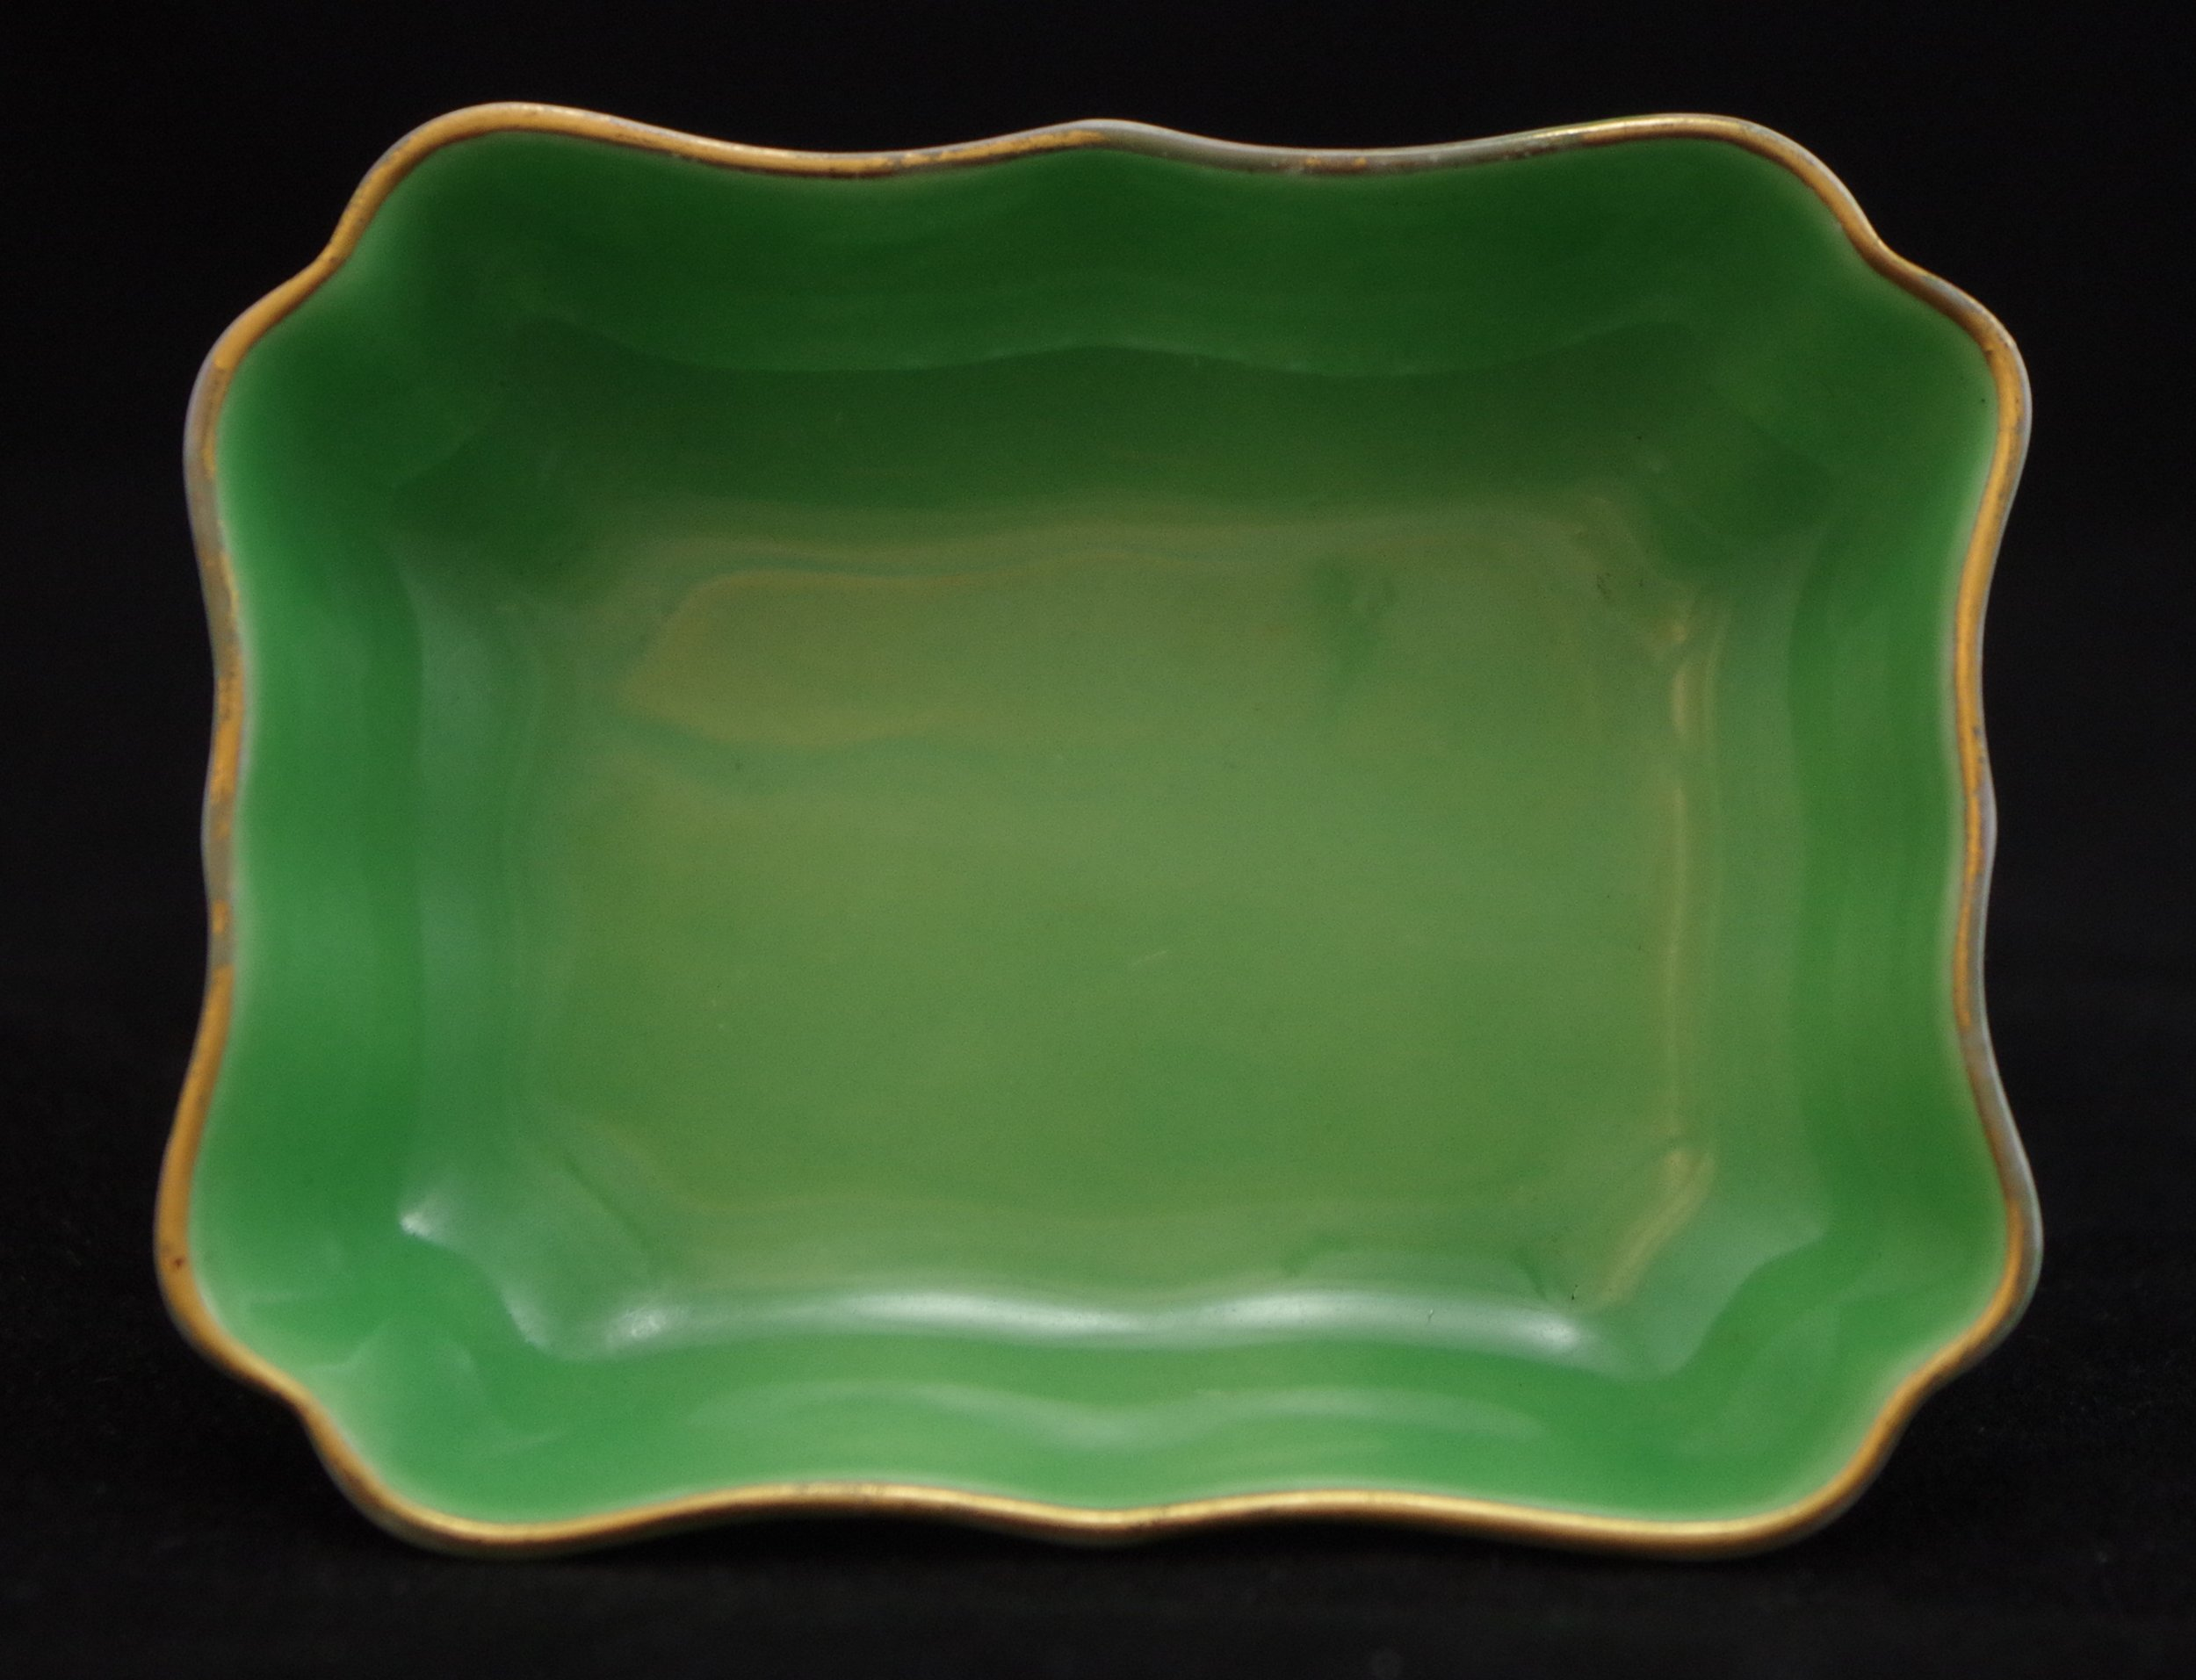 royal-crown-derby-oblong-tray-1800-green-ground